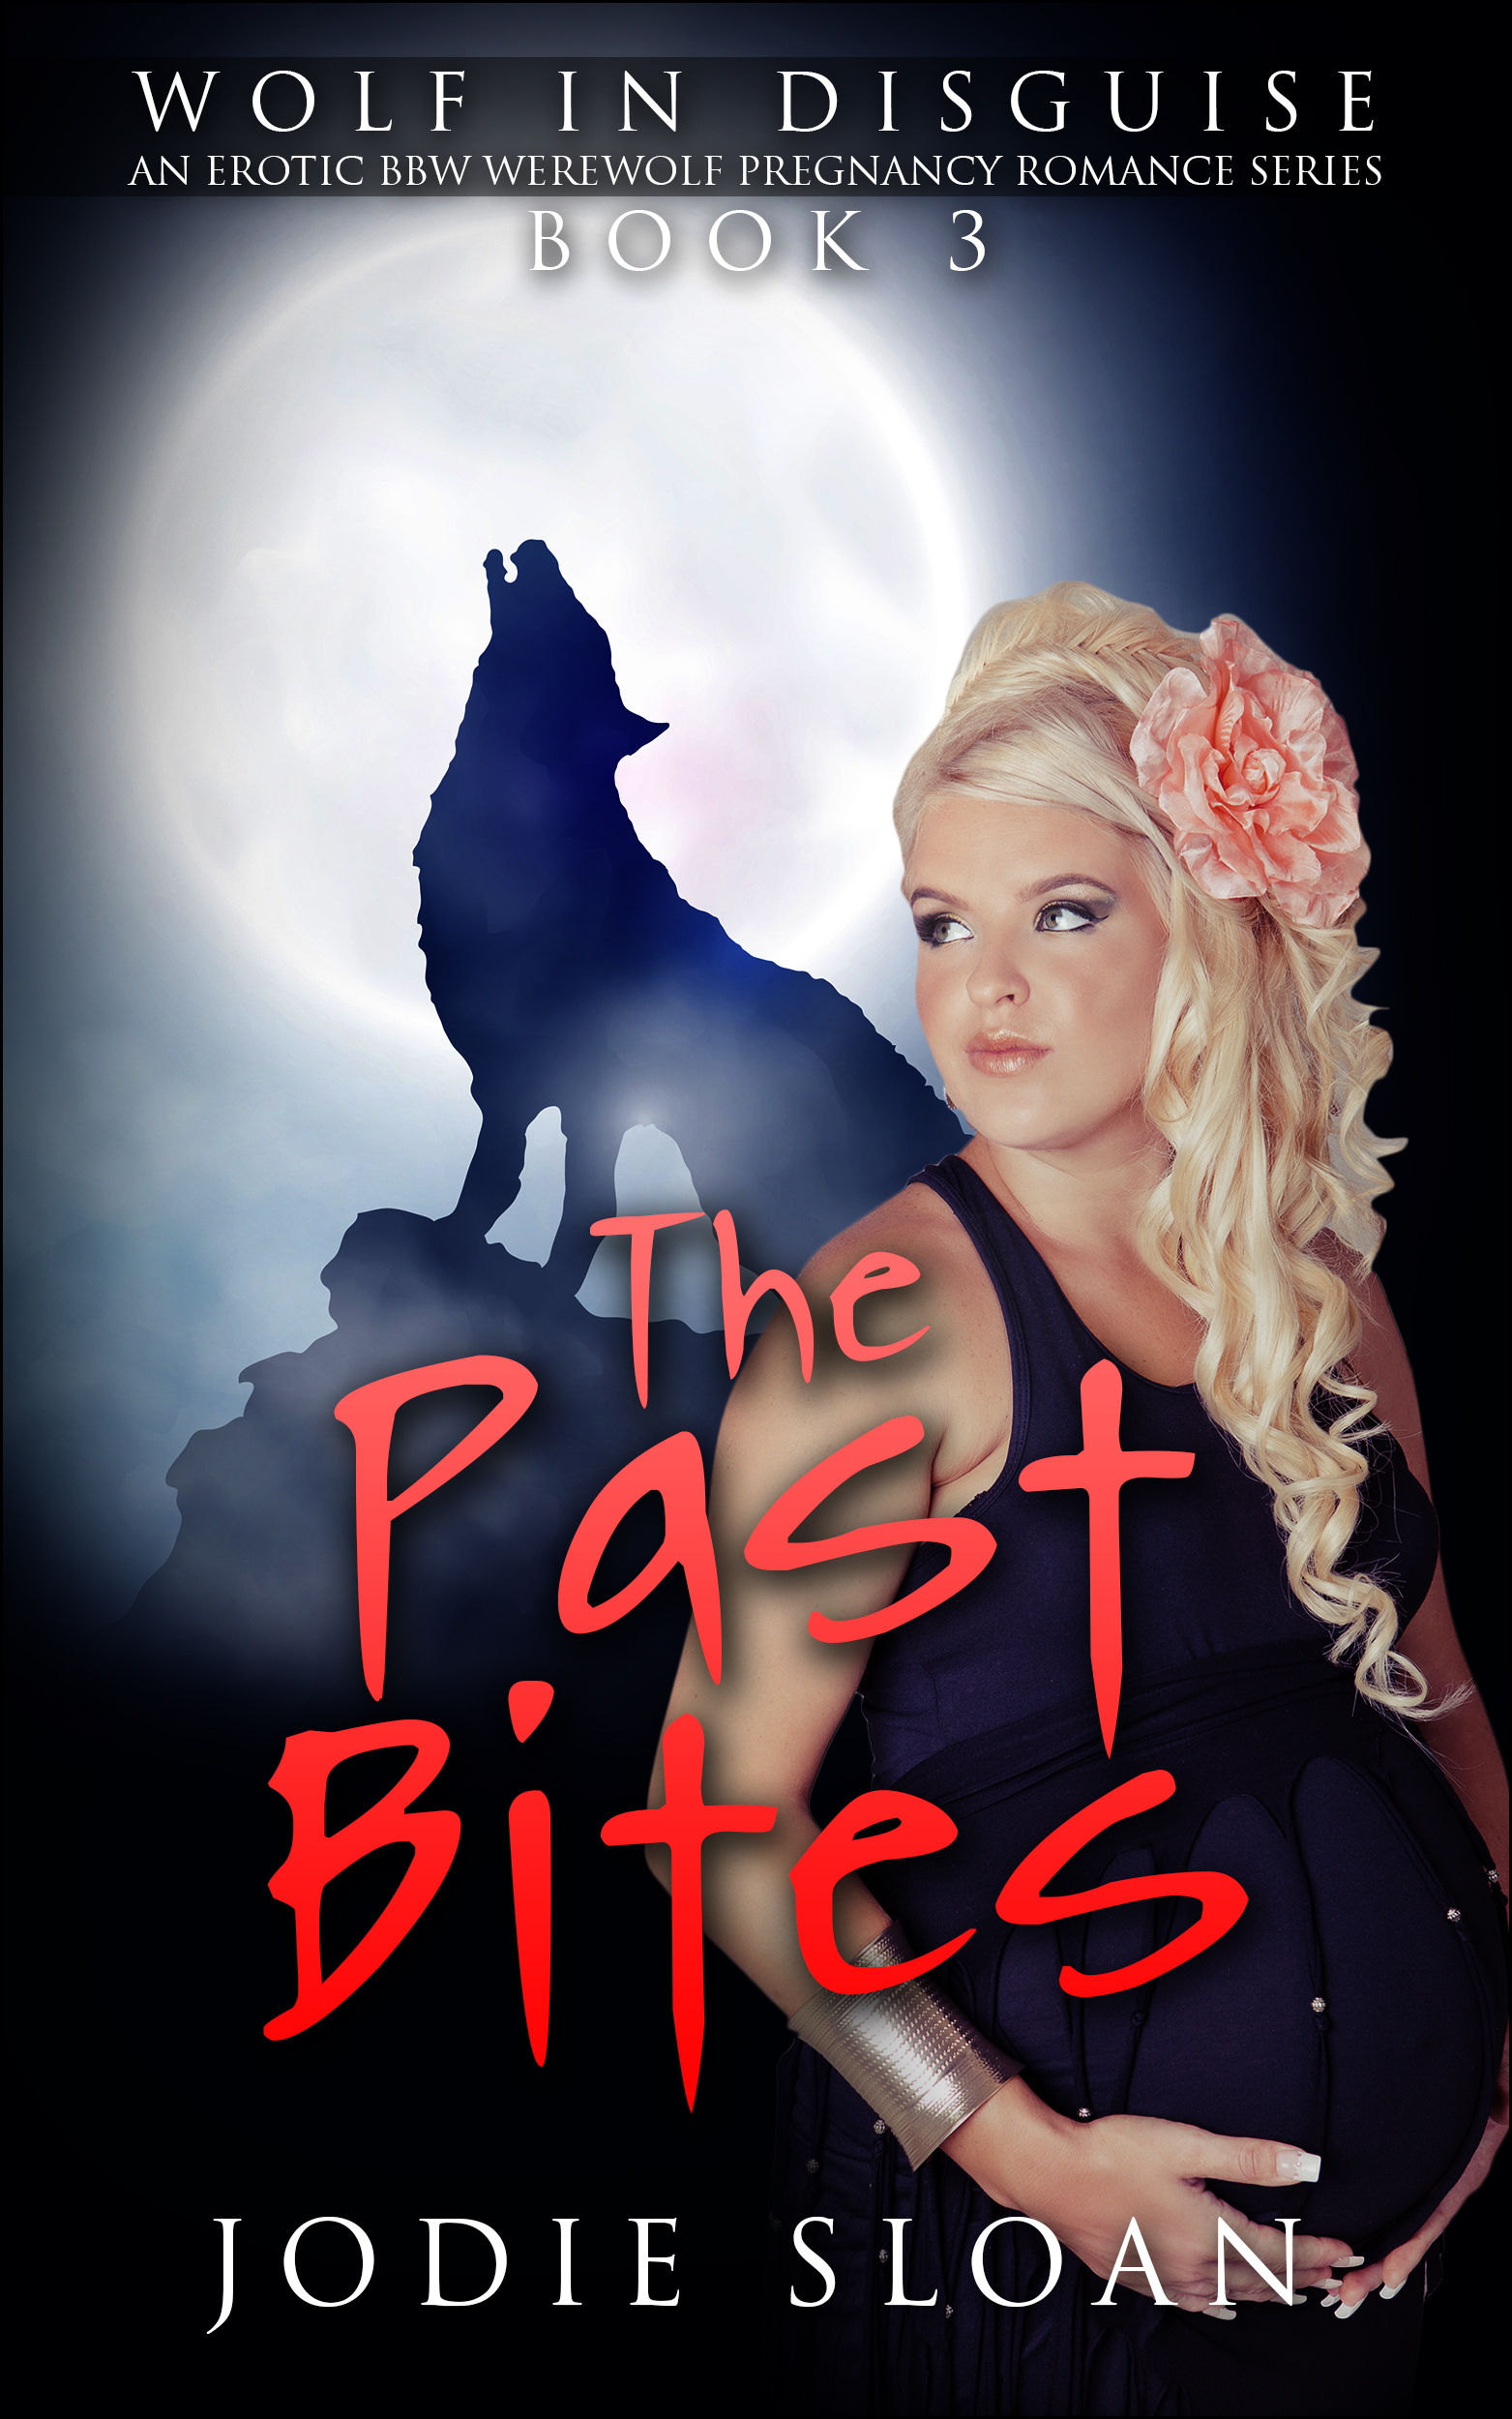 Wolf in disguise : the past bites